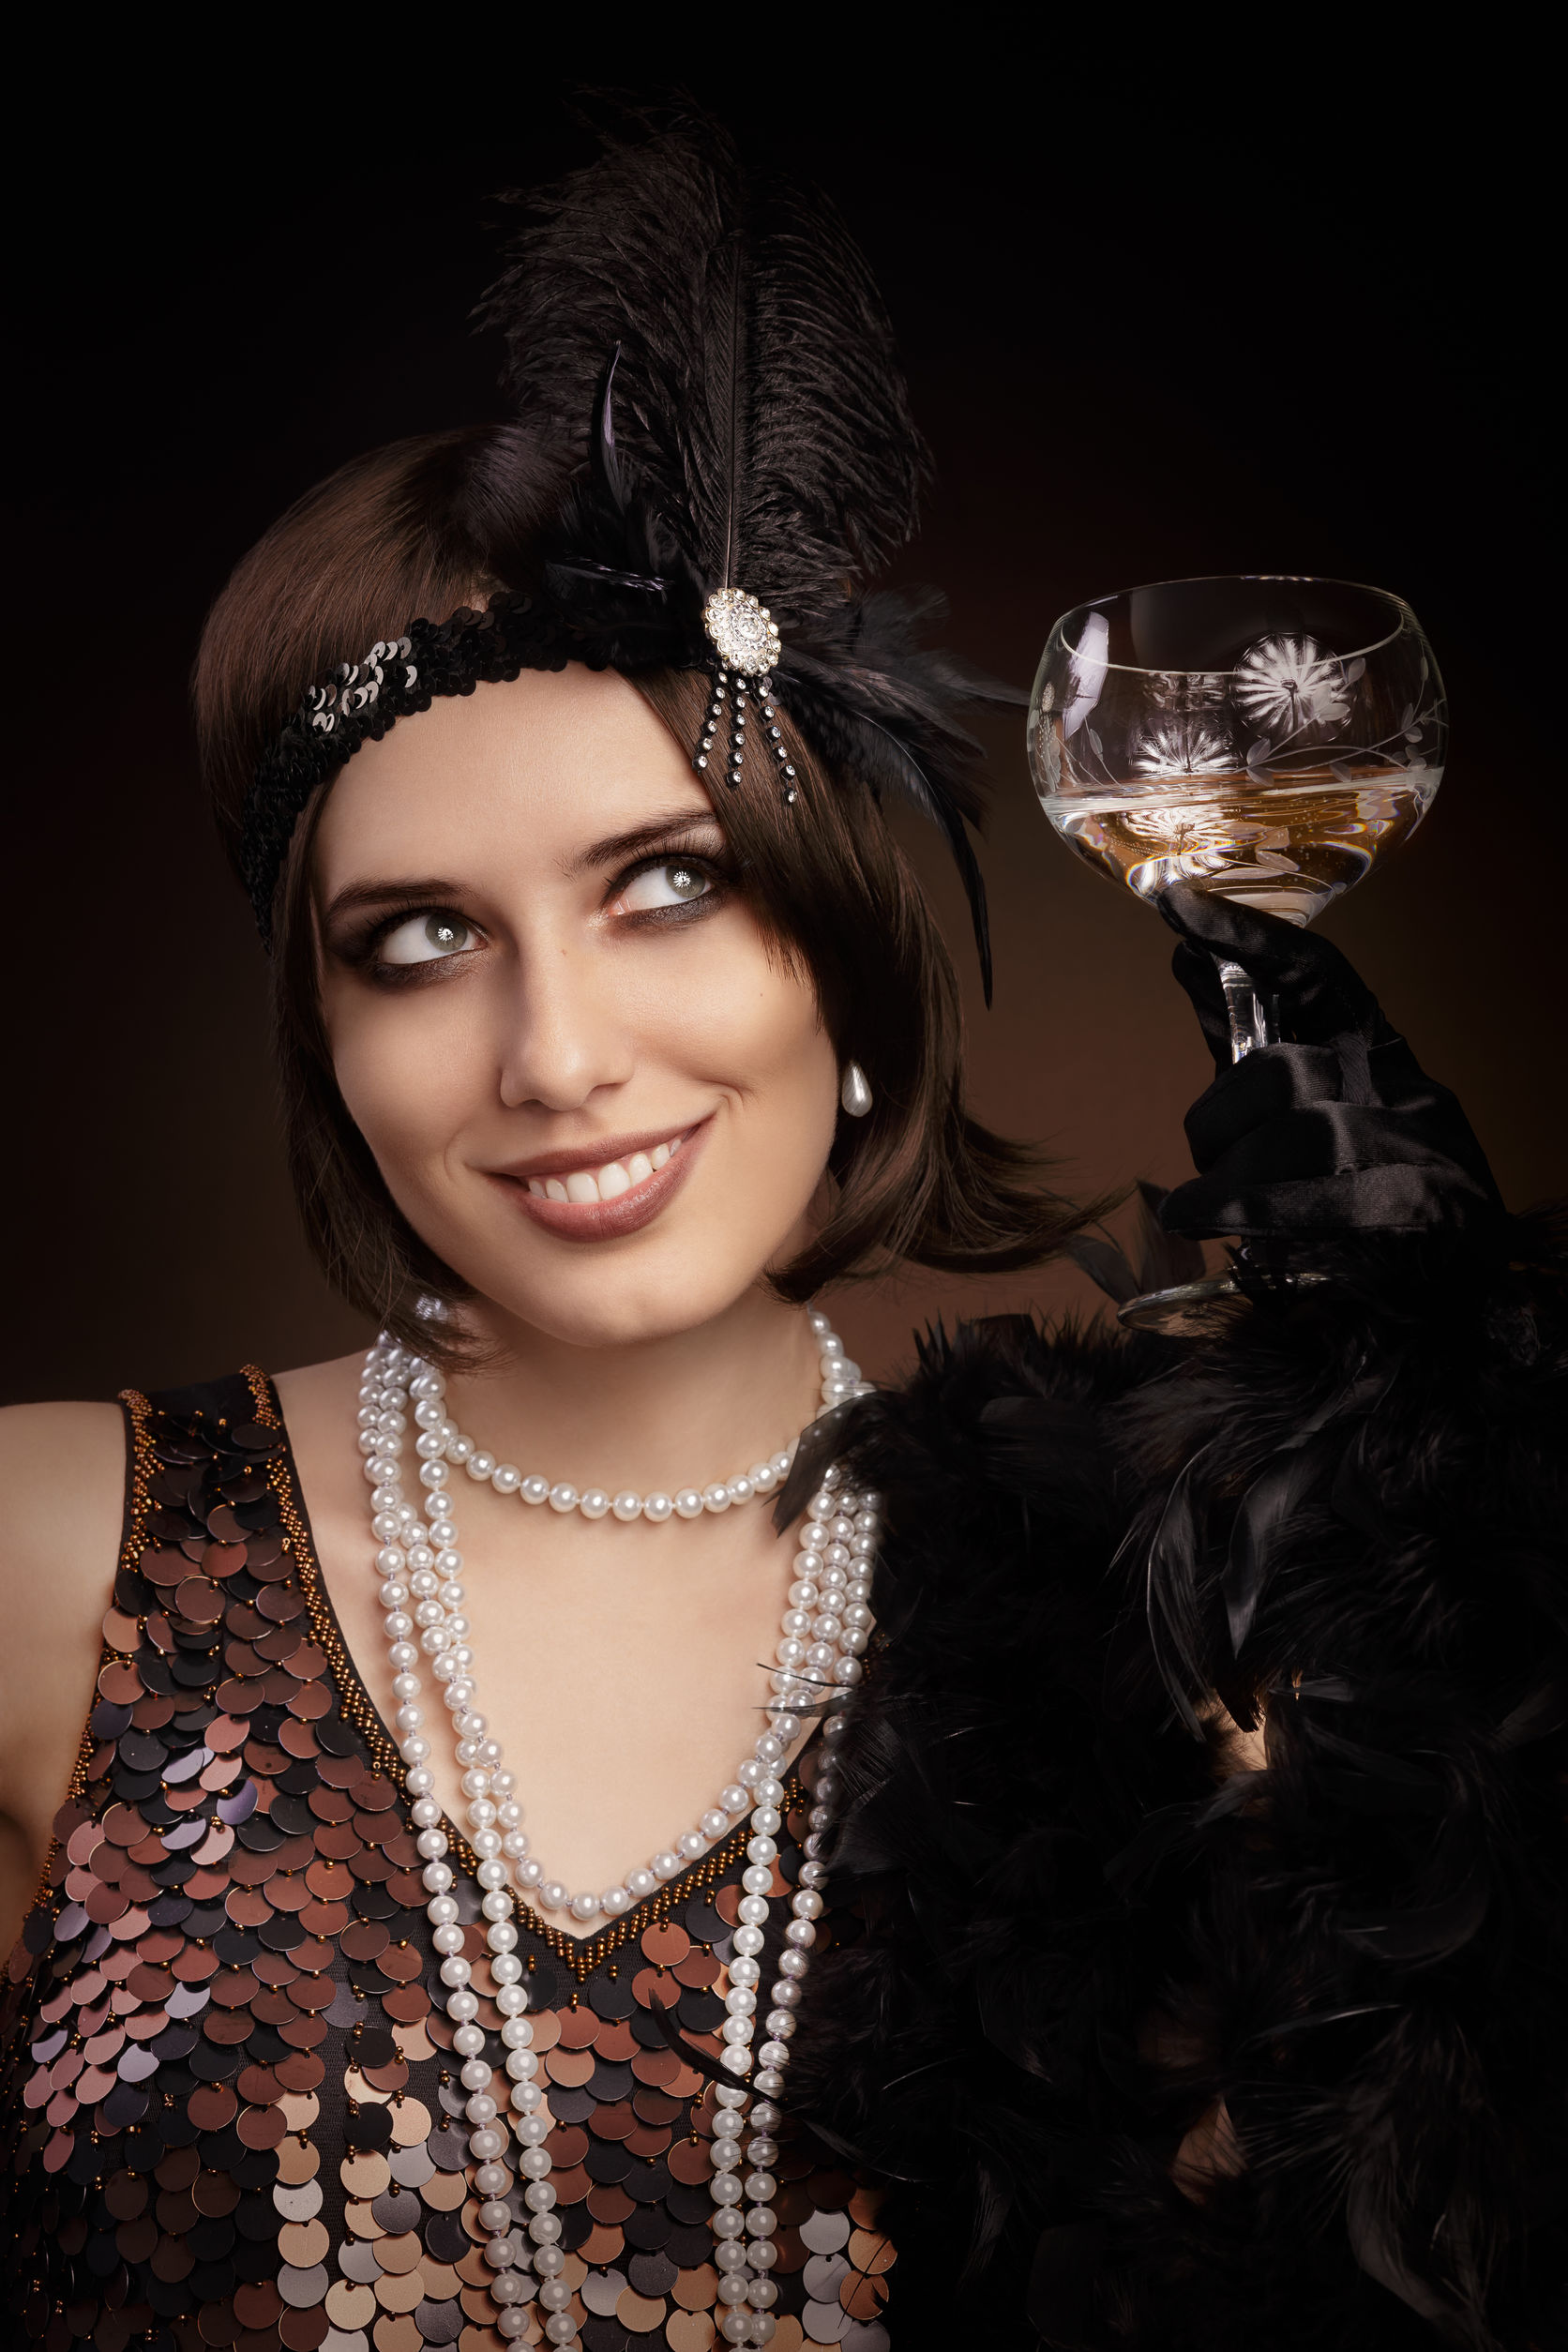 33260253 – portrait of a flapper girl with a glass of champagne